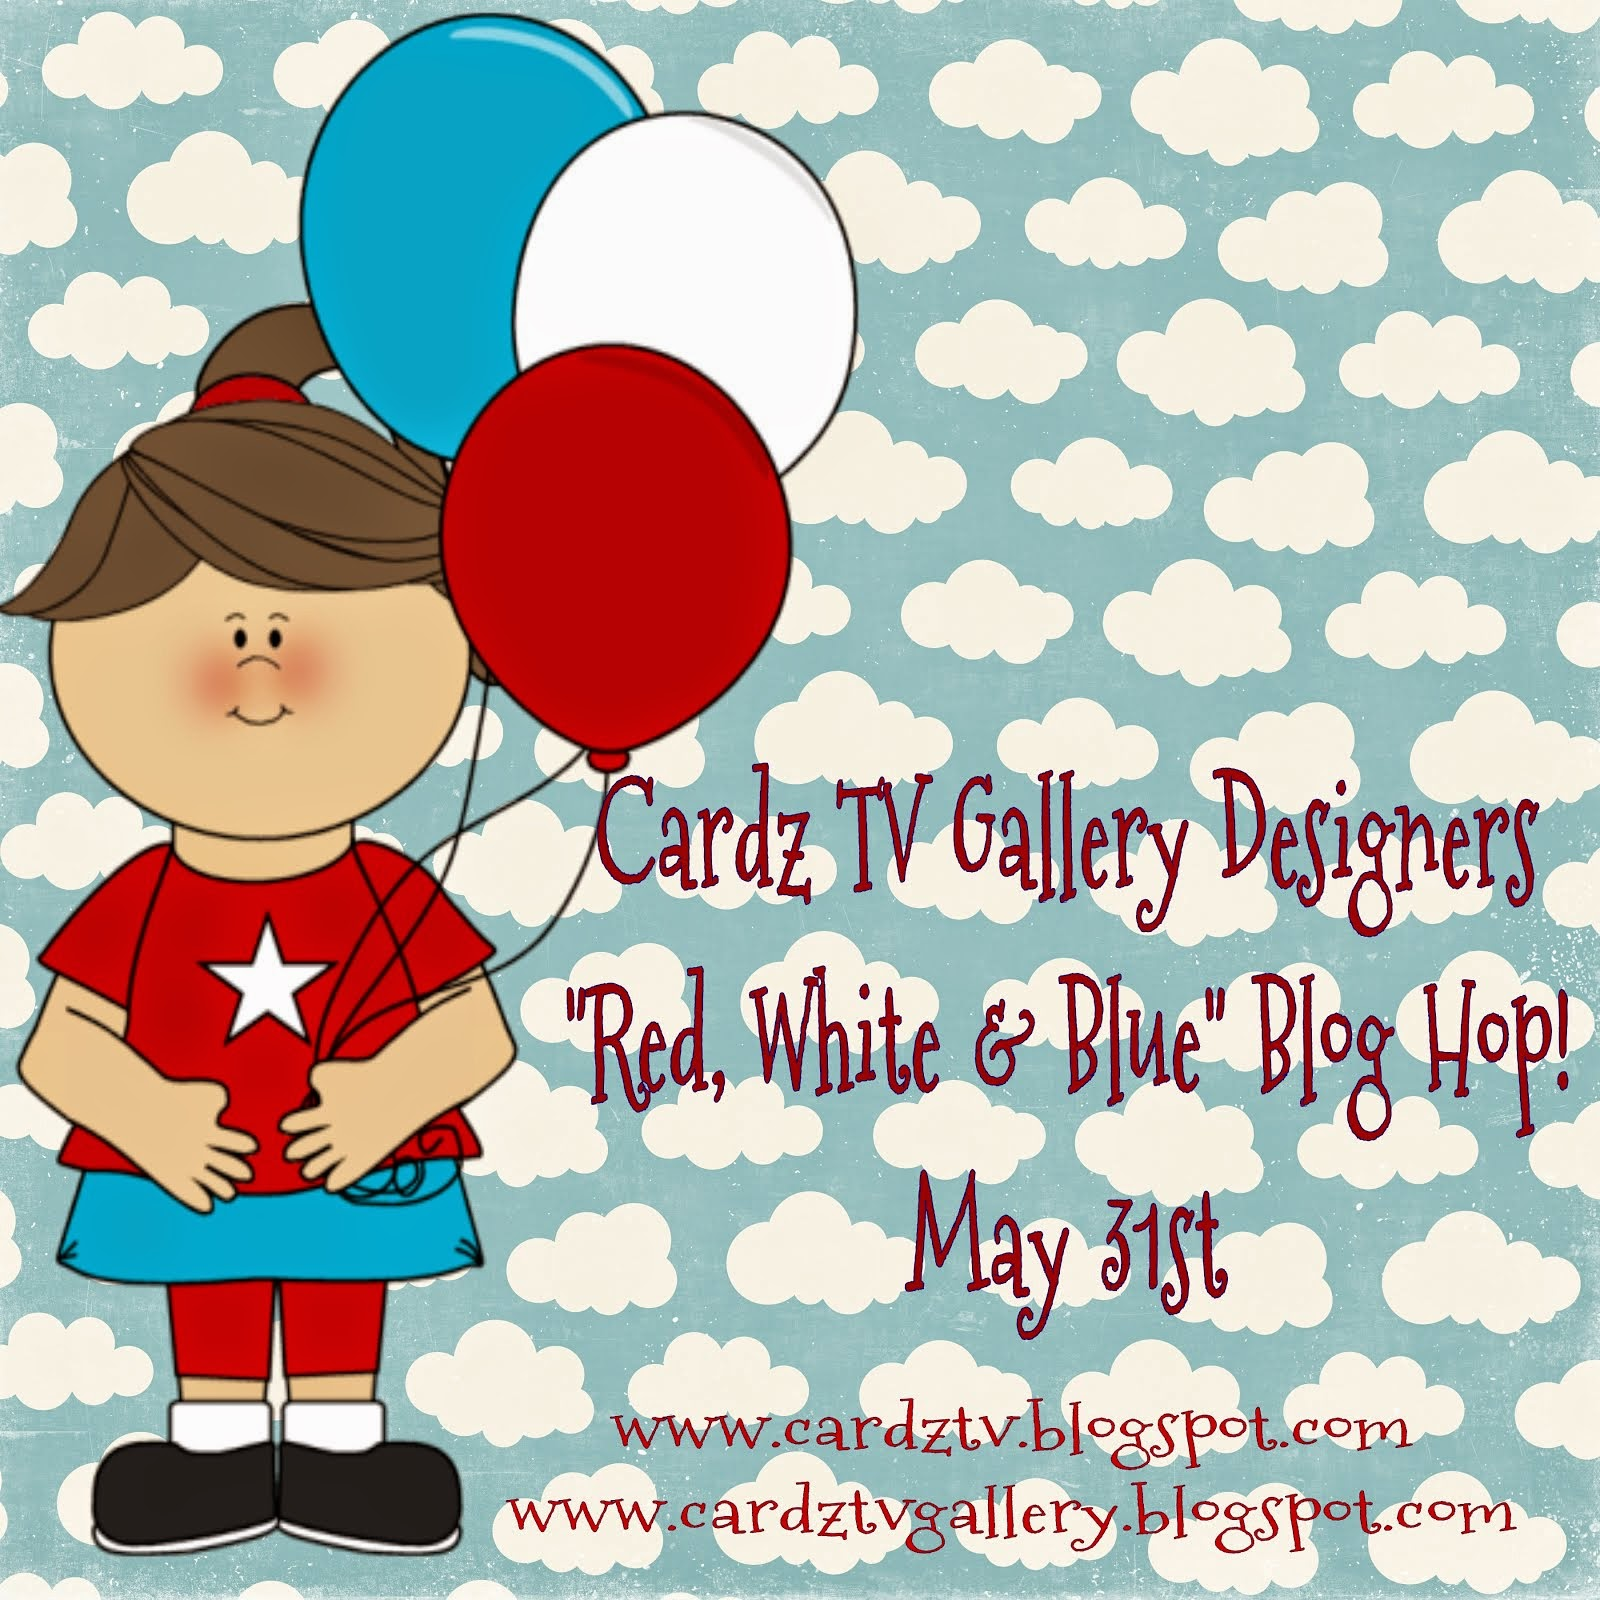 JOIN US FOR ALL THE FUN & BLOG CANDY TOO!